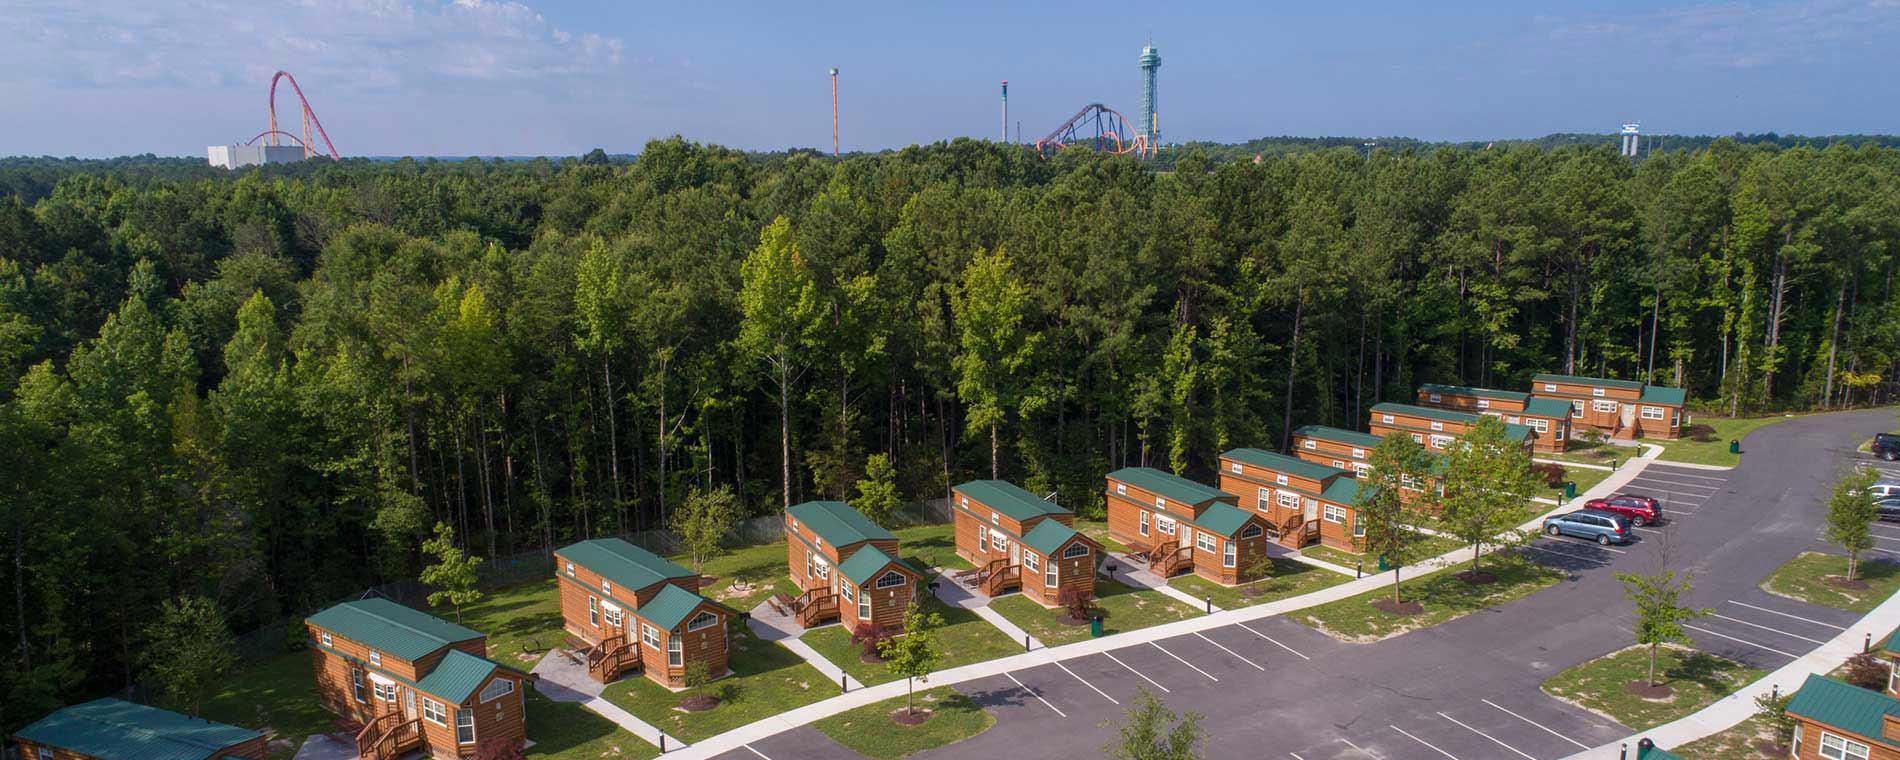 Deluxe Cabin Rentals at Kings Dominion KOA Camp Site